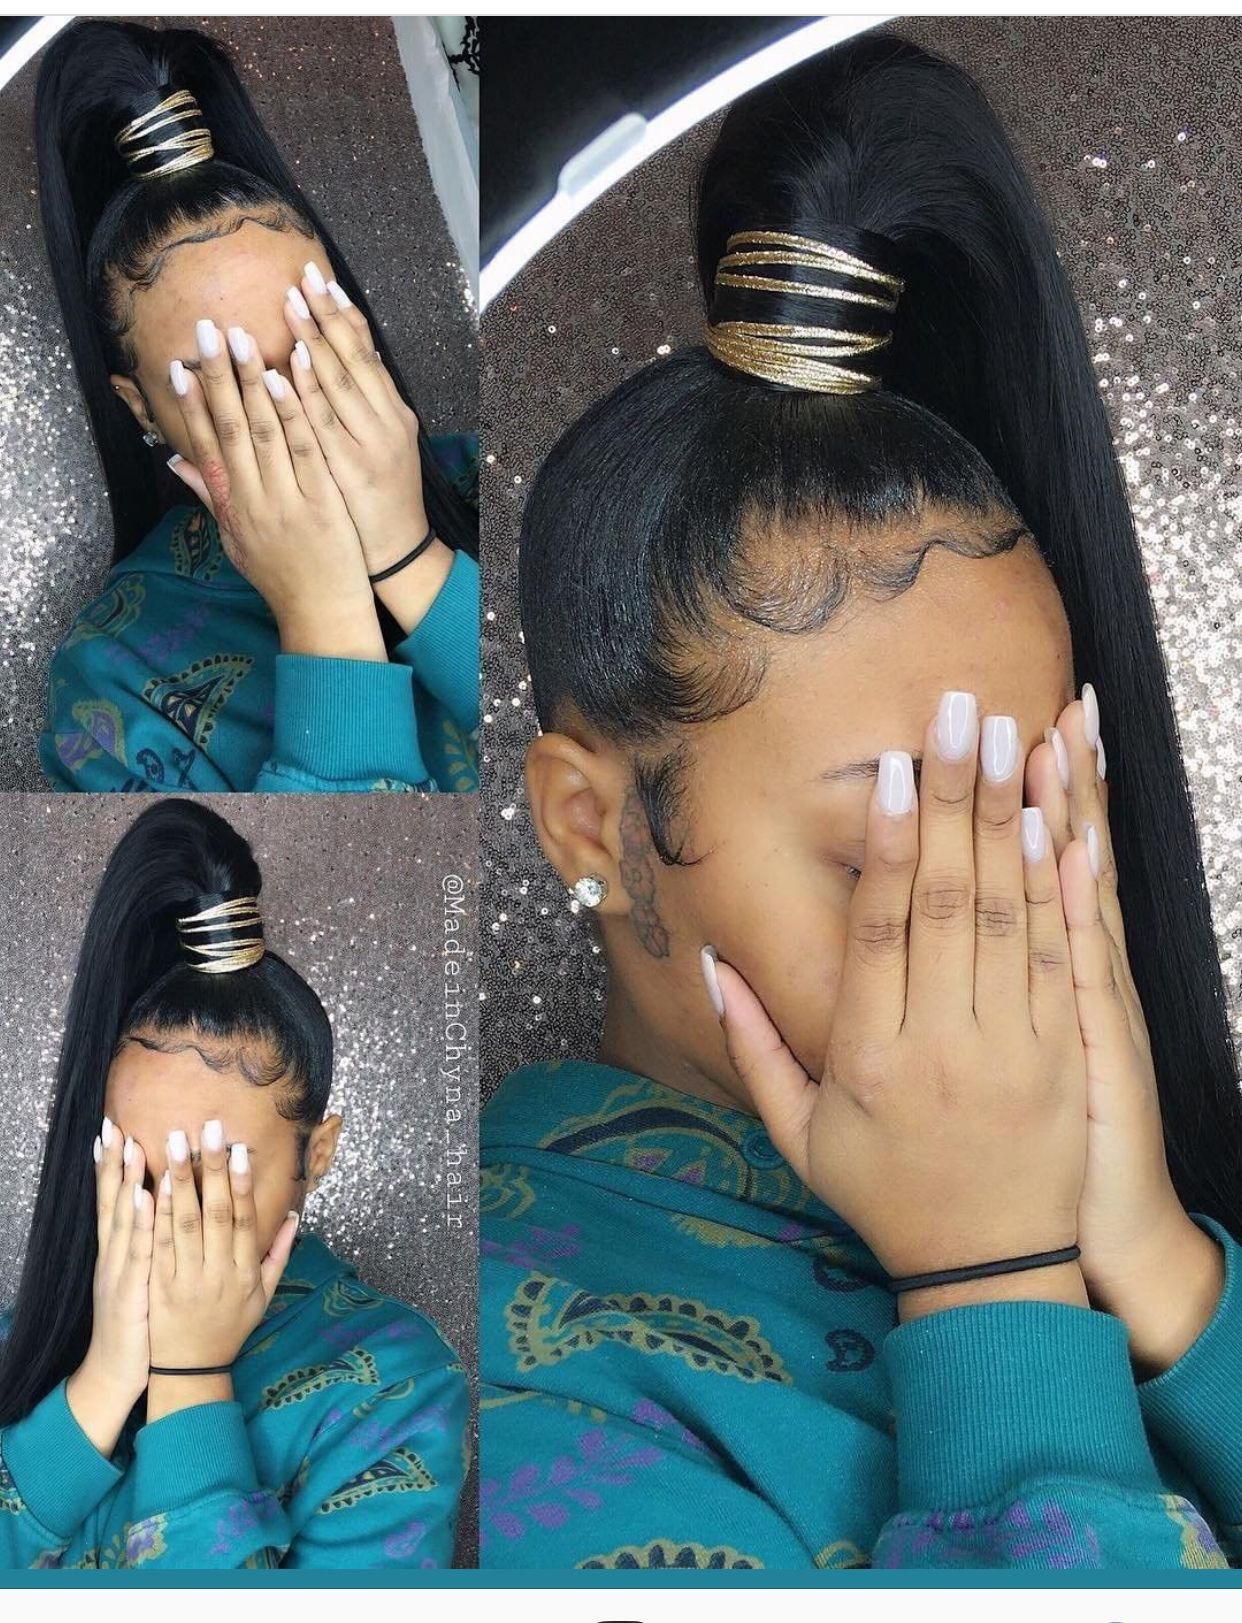 Genie Ponytail New Looks Here Daily Follow My Boards For More Pinterest Chanel Monroe Ponytail Styles Hair Natural Hair Styles